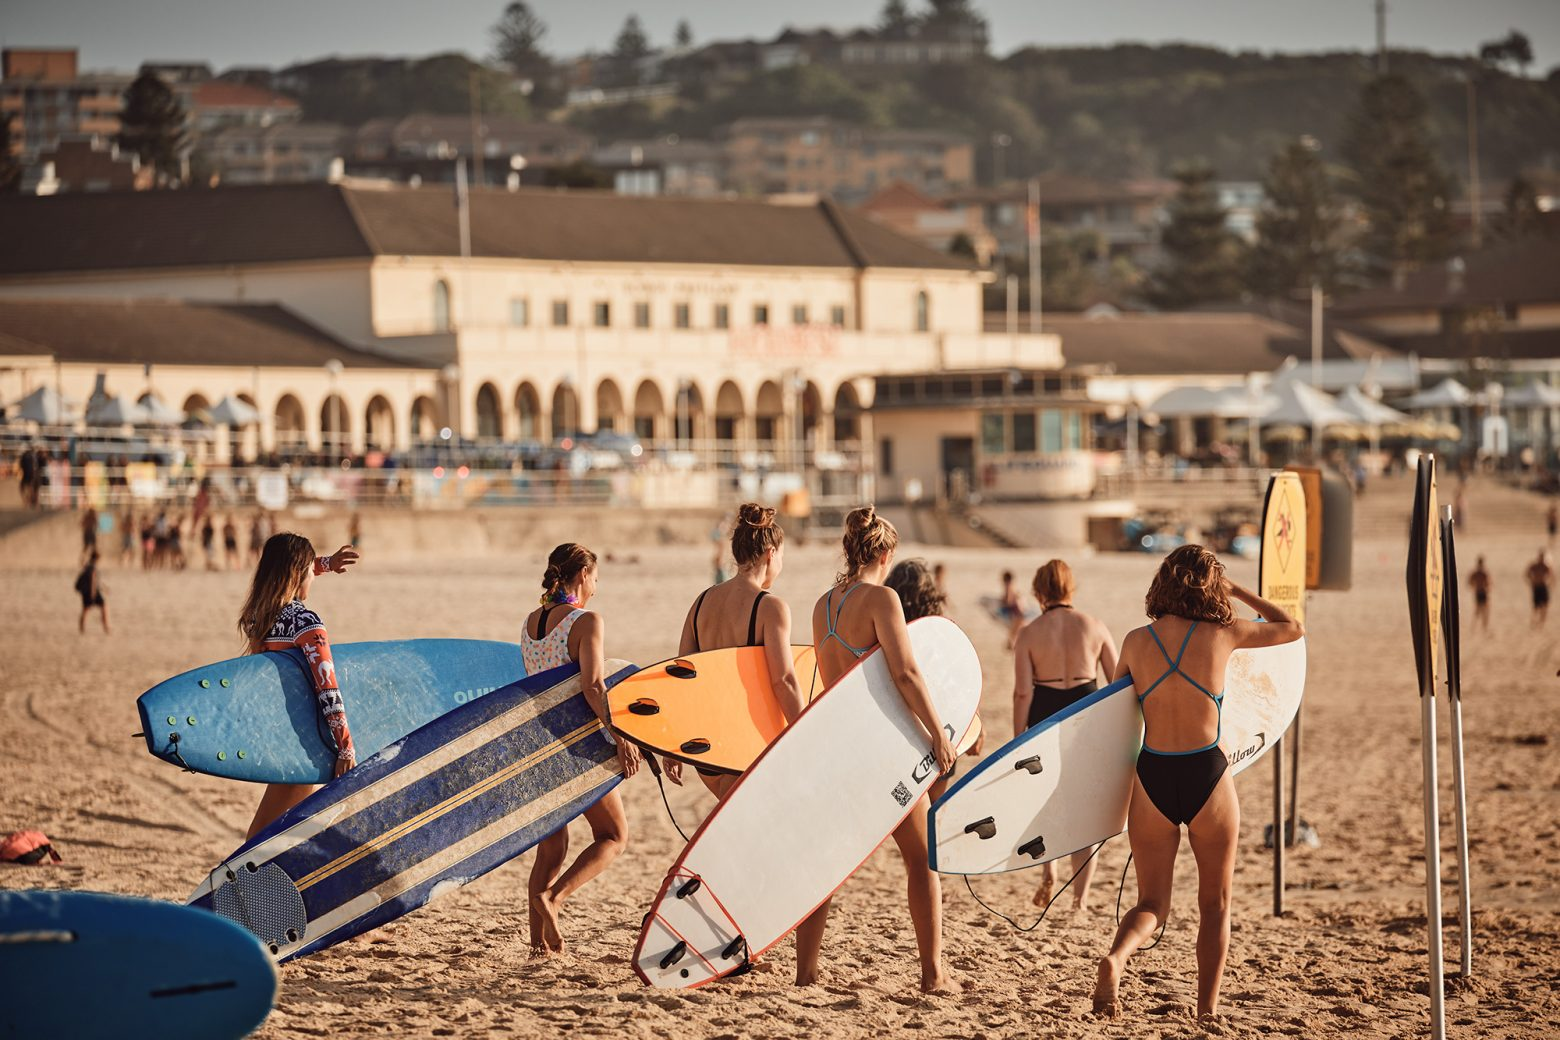 So many girls surf Bondi, it's awesome